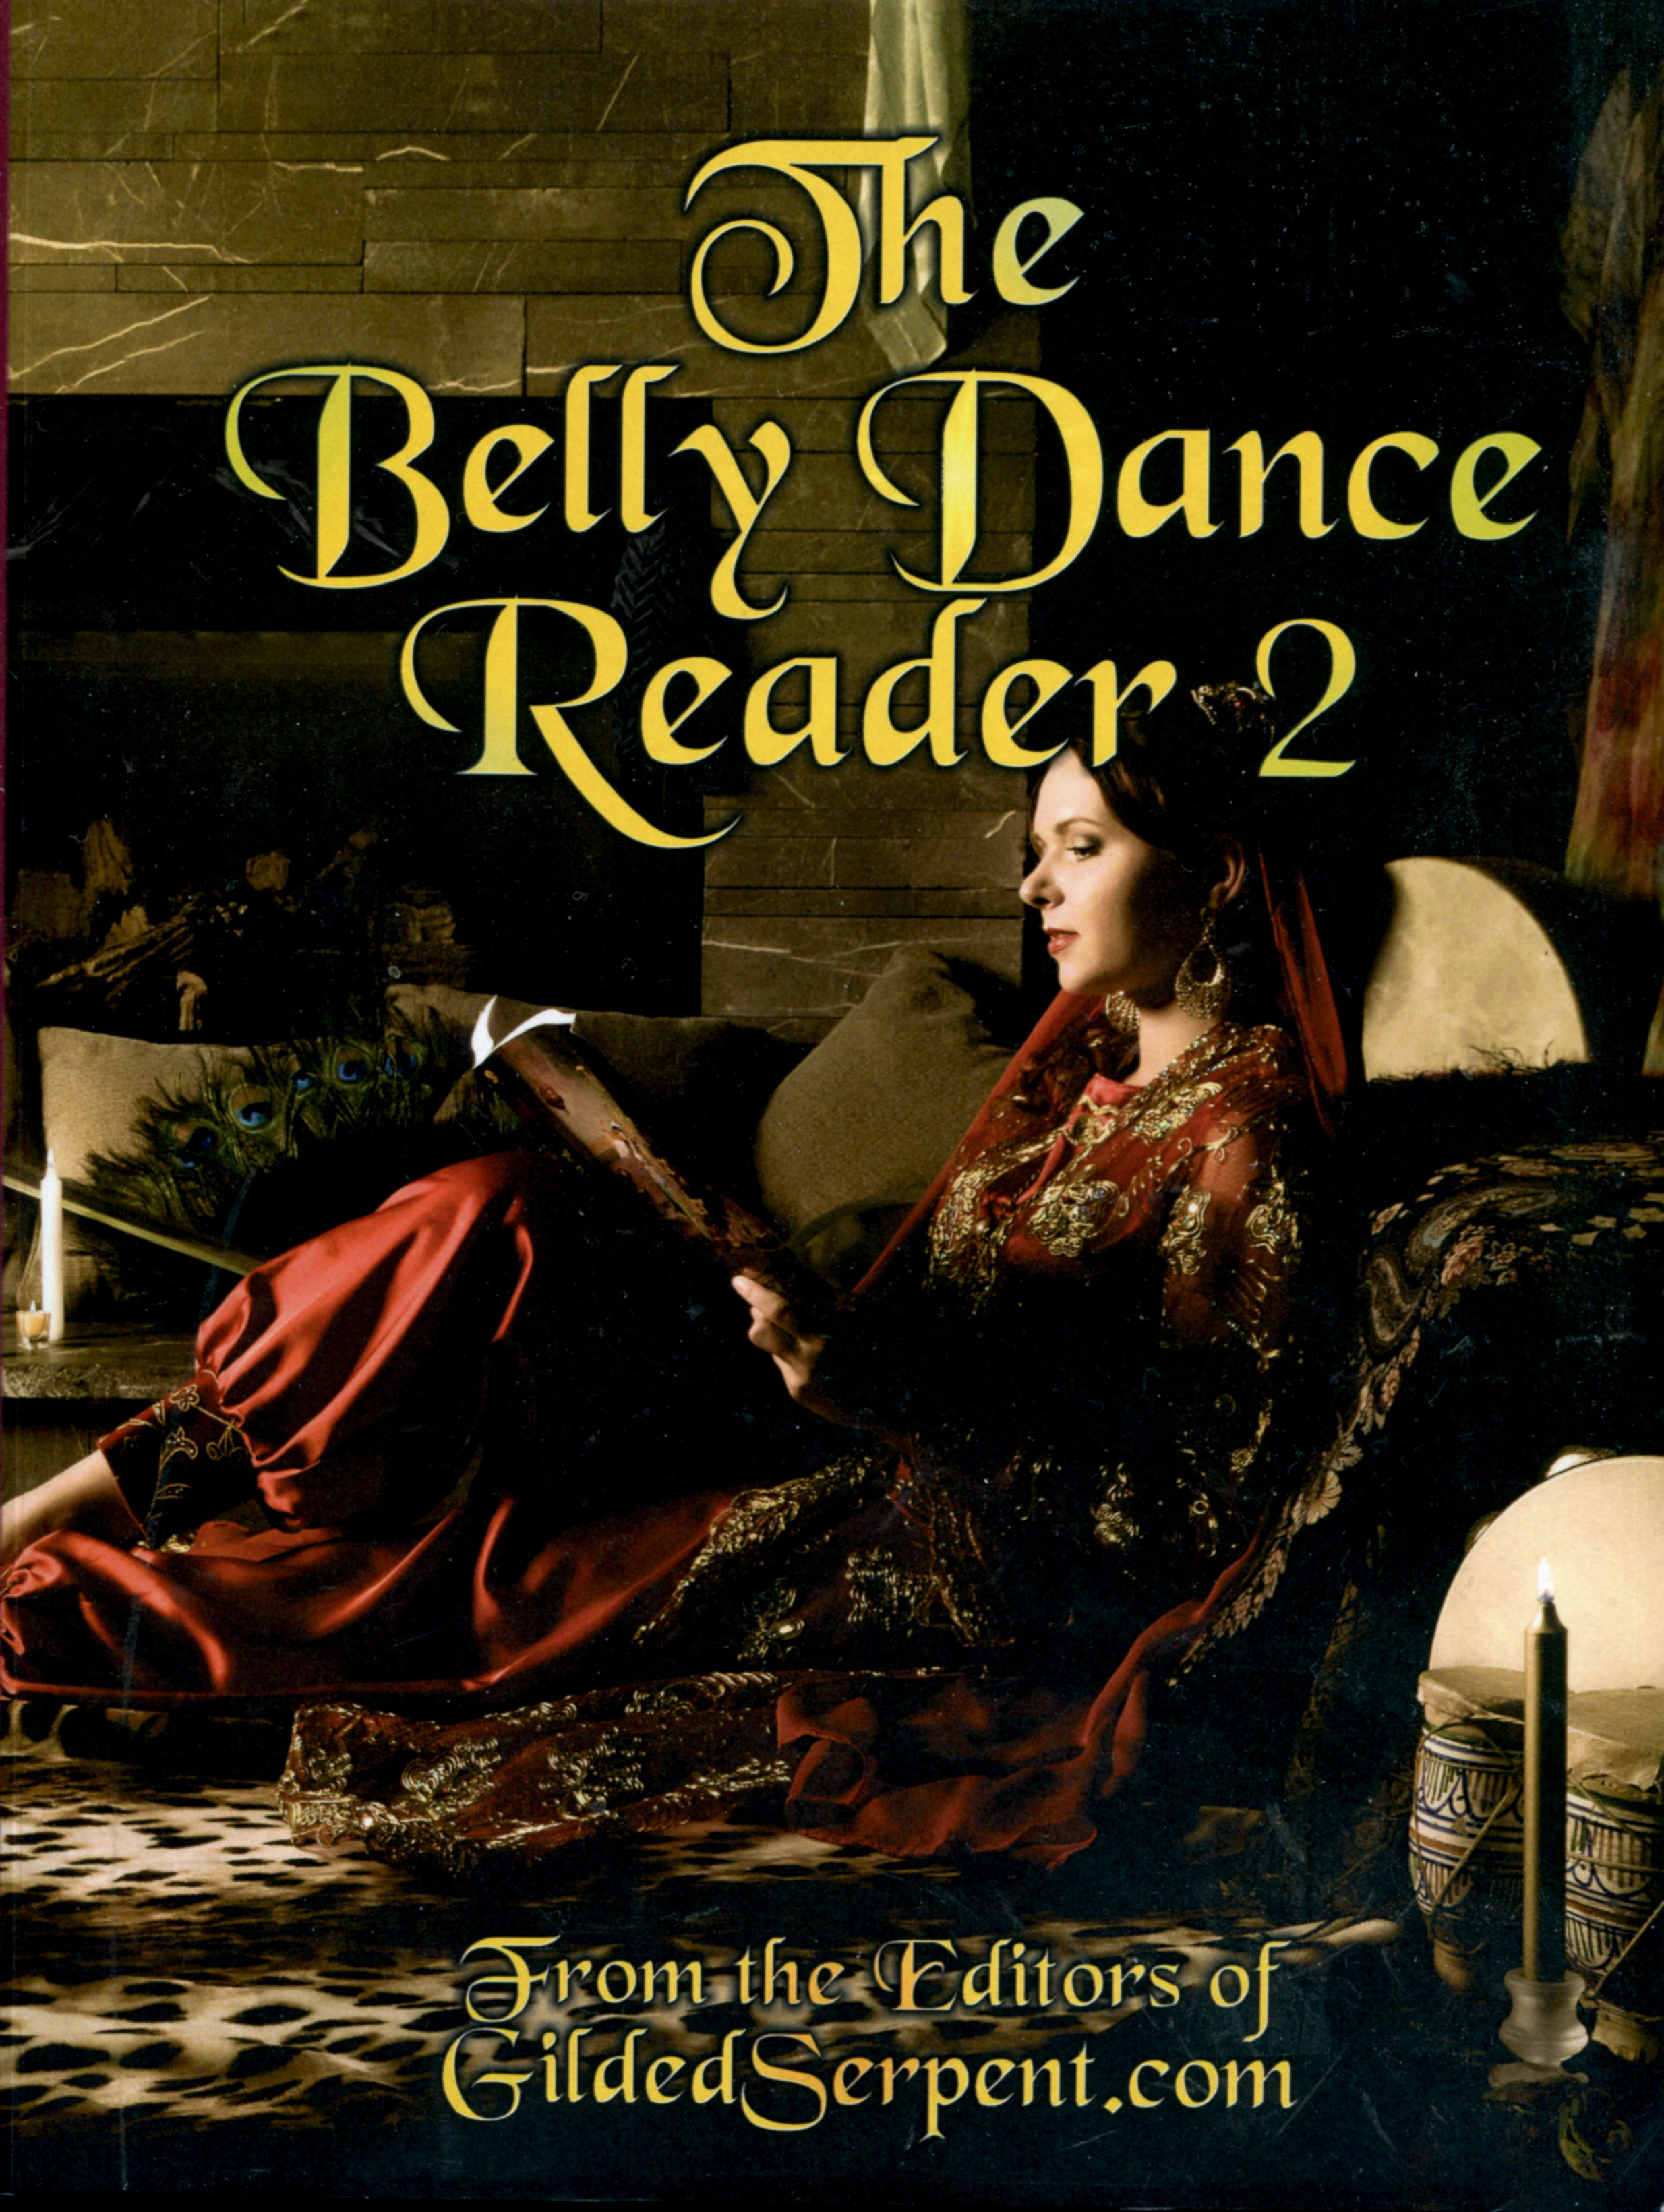 2014 Belly Dance Reader 2 with my article.